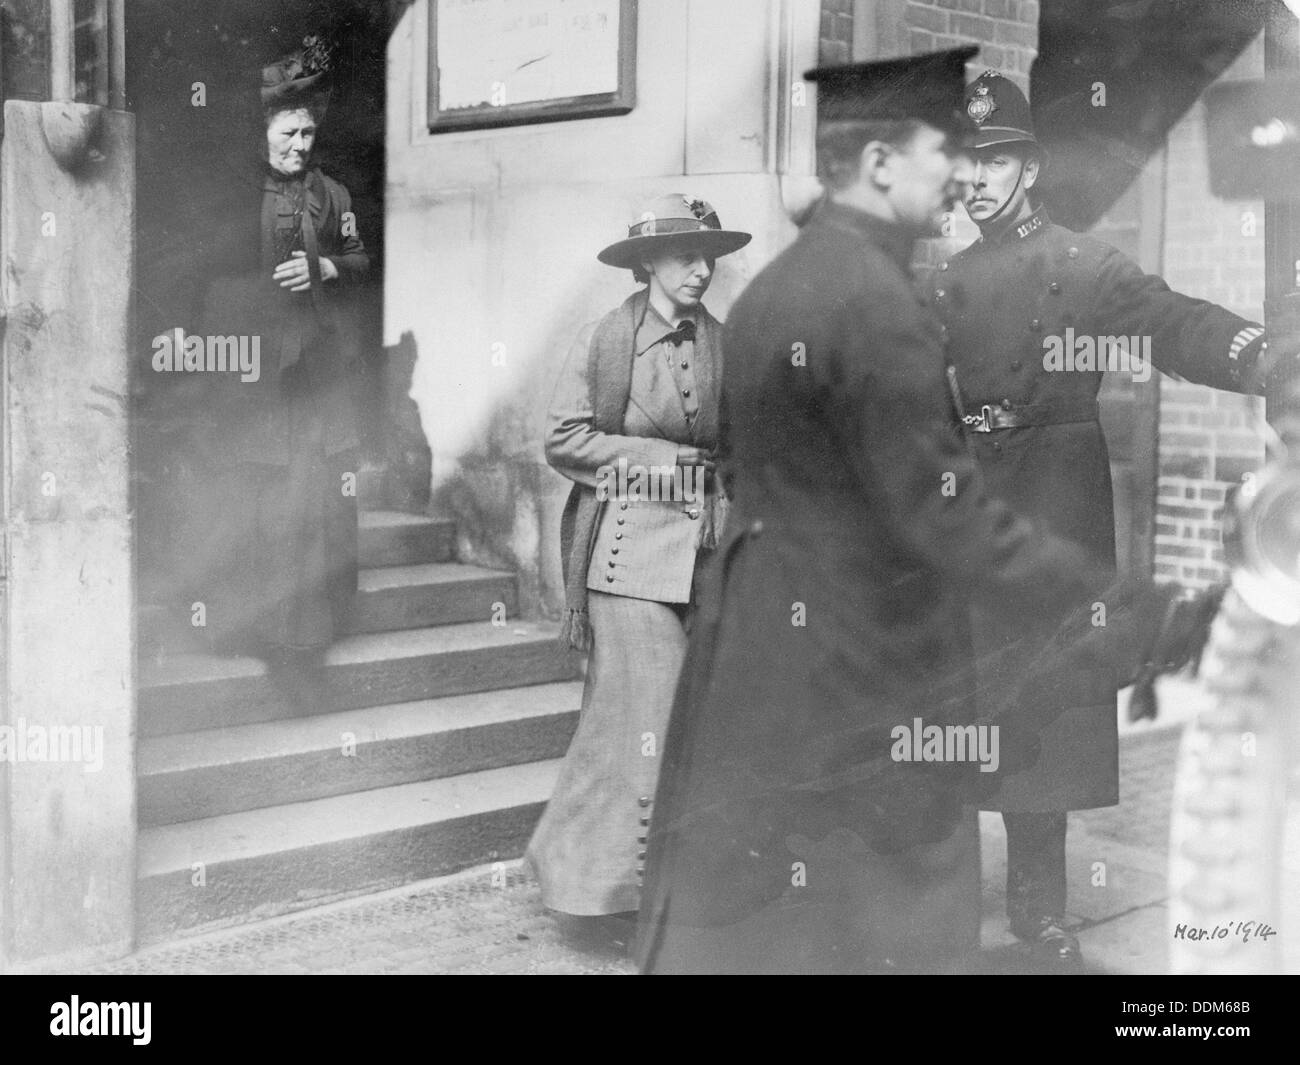 'Slasher' Mary Richardson leaving court, 1914. - Stock Image